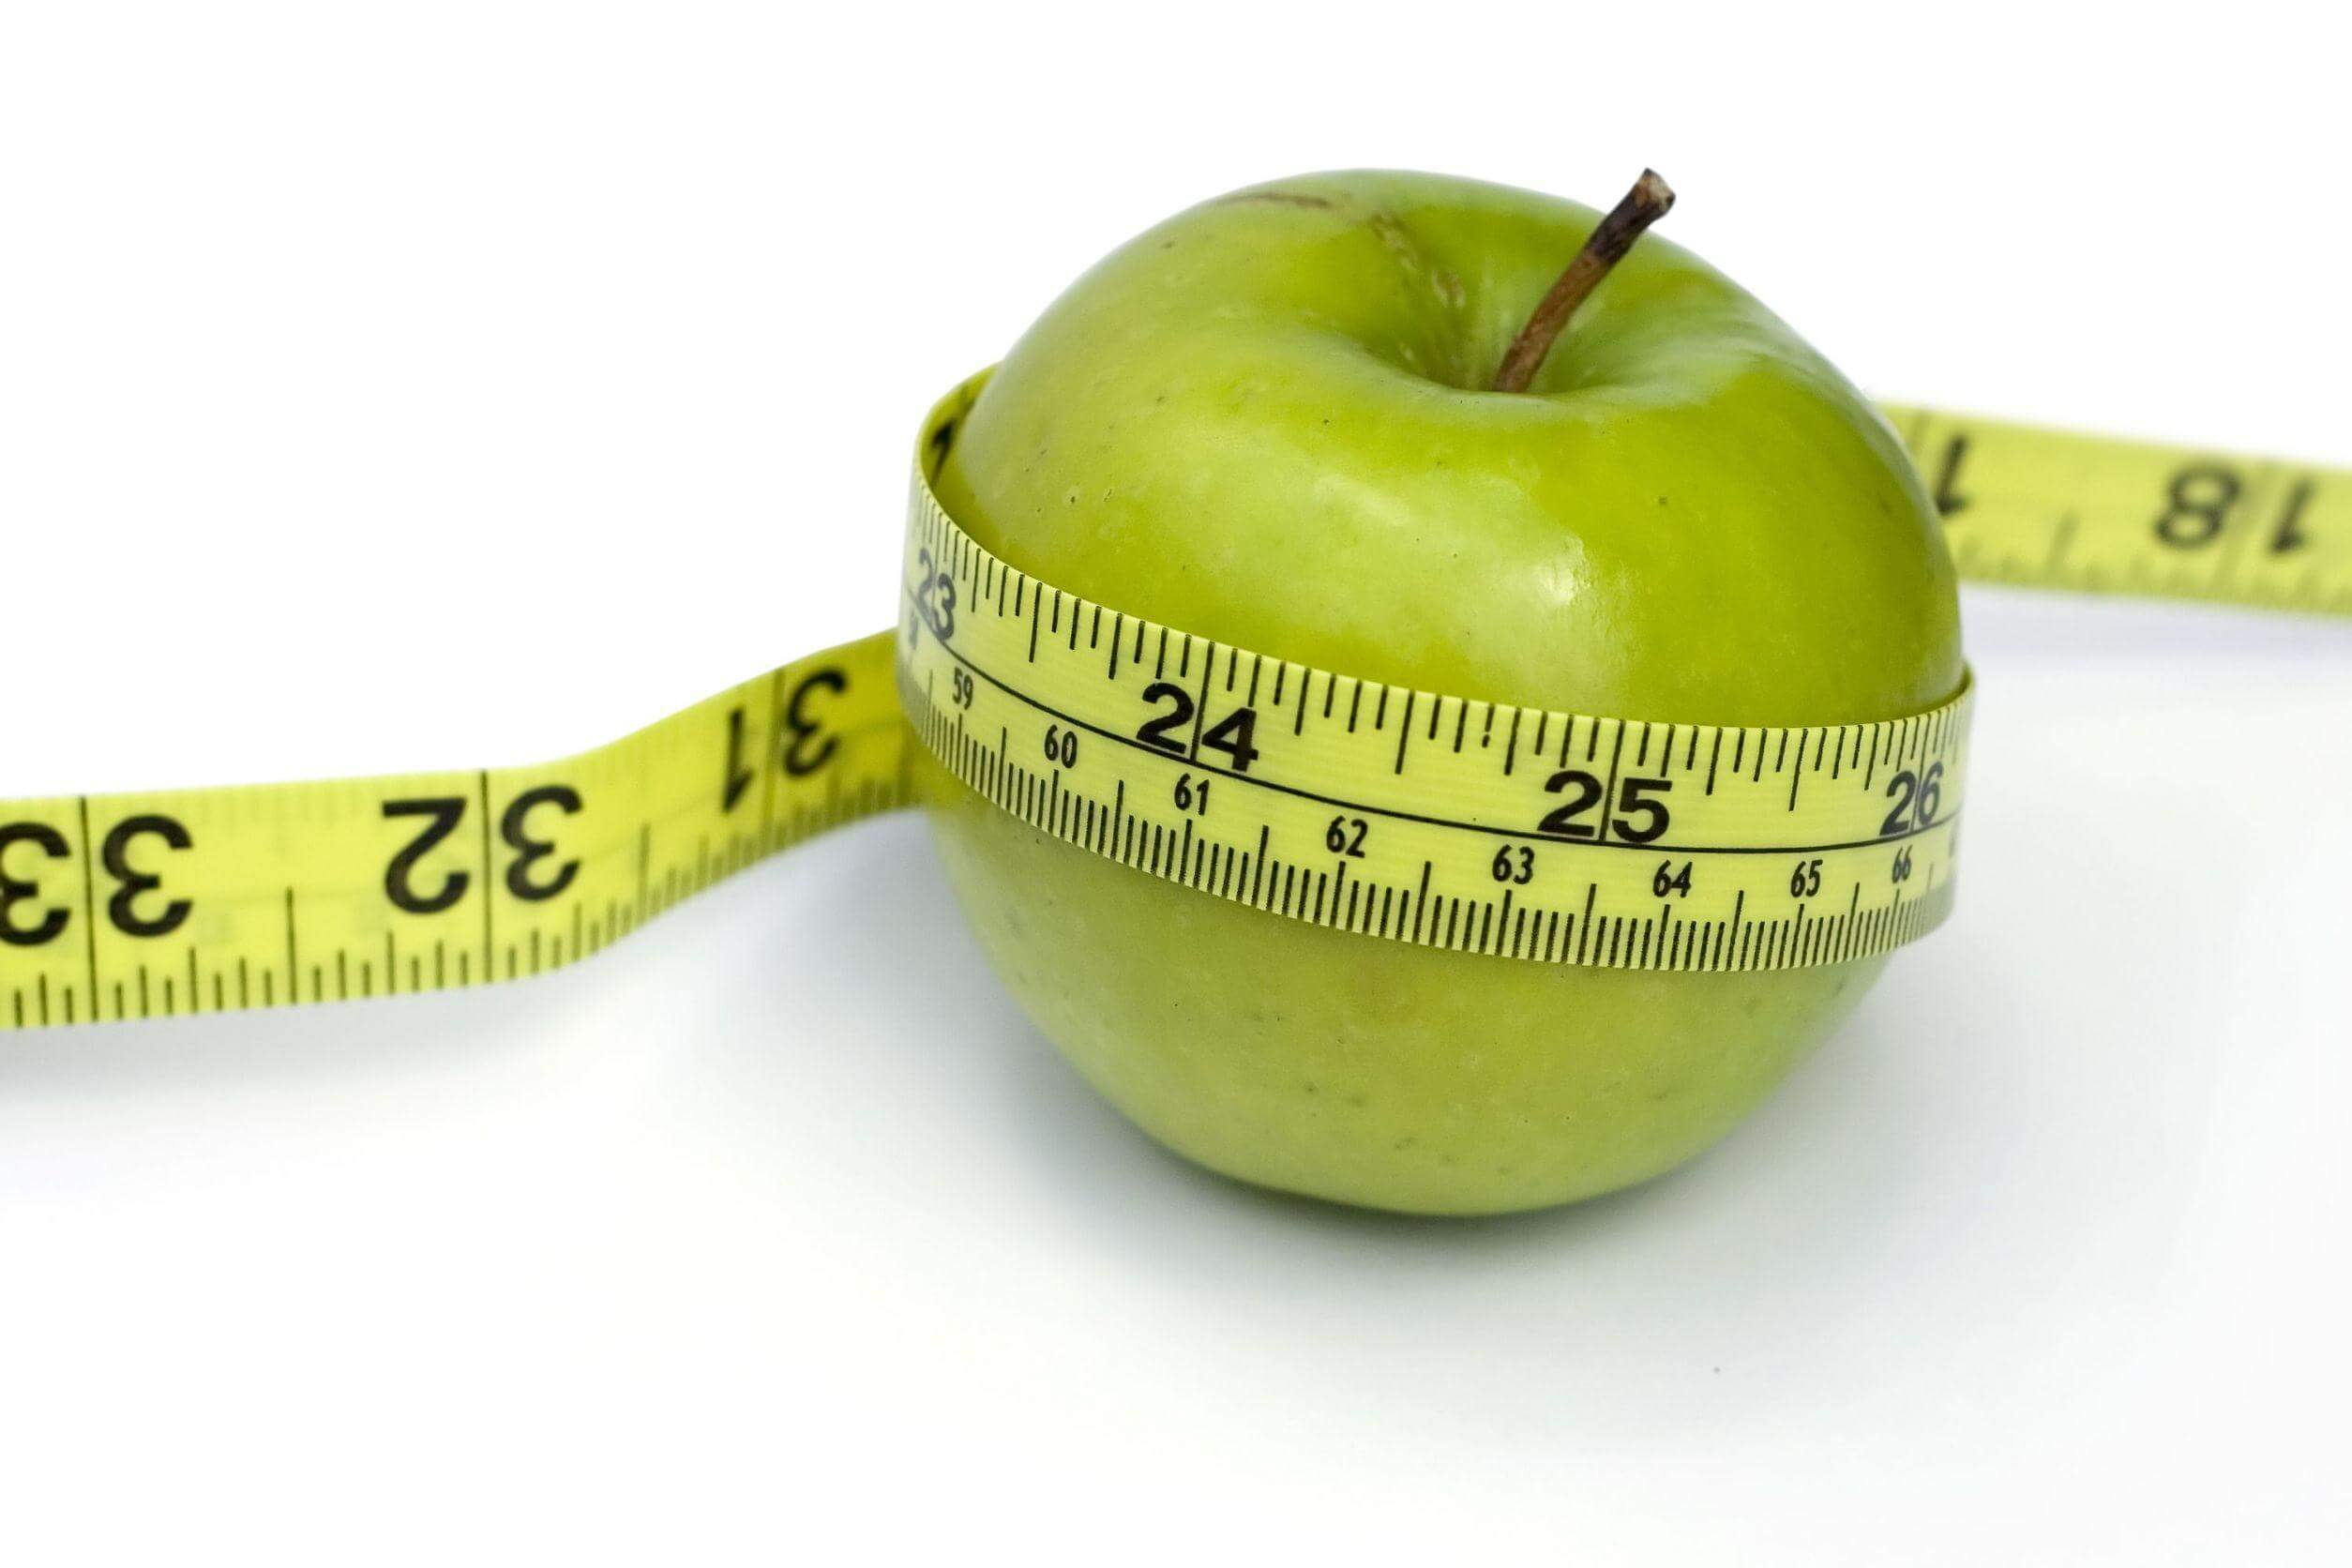 How Weight Loss Can Impact Kidney Disease